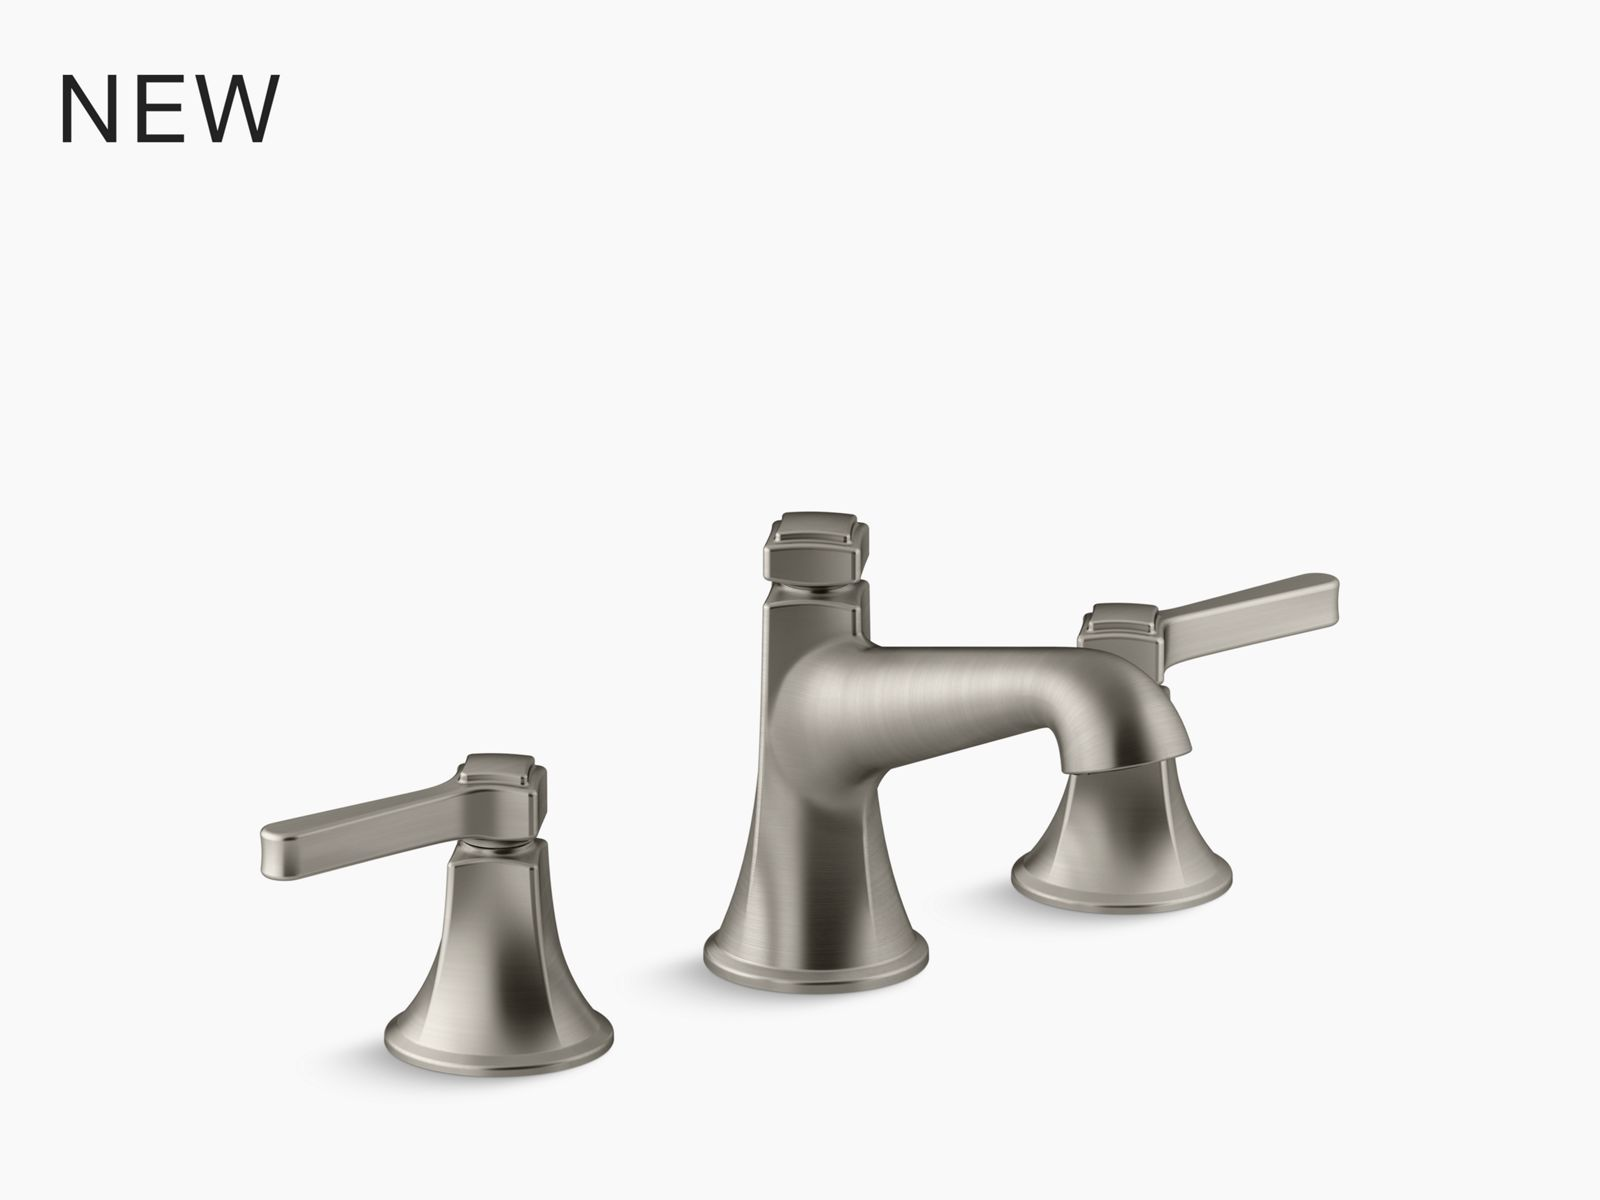 forte widespread commercial bathroom sink faucet with sculpted lever handles metal drain red blue indexing and vandal resistant aerator